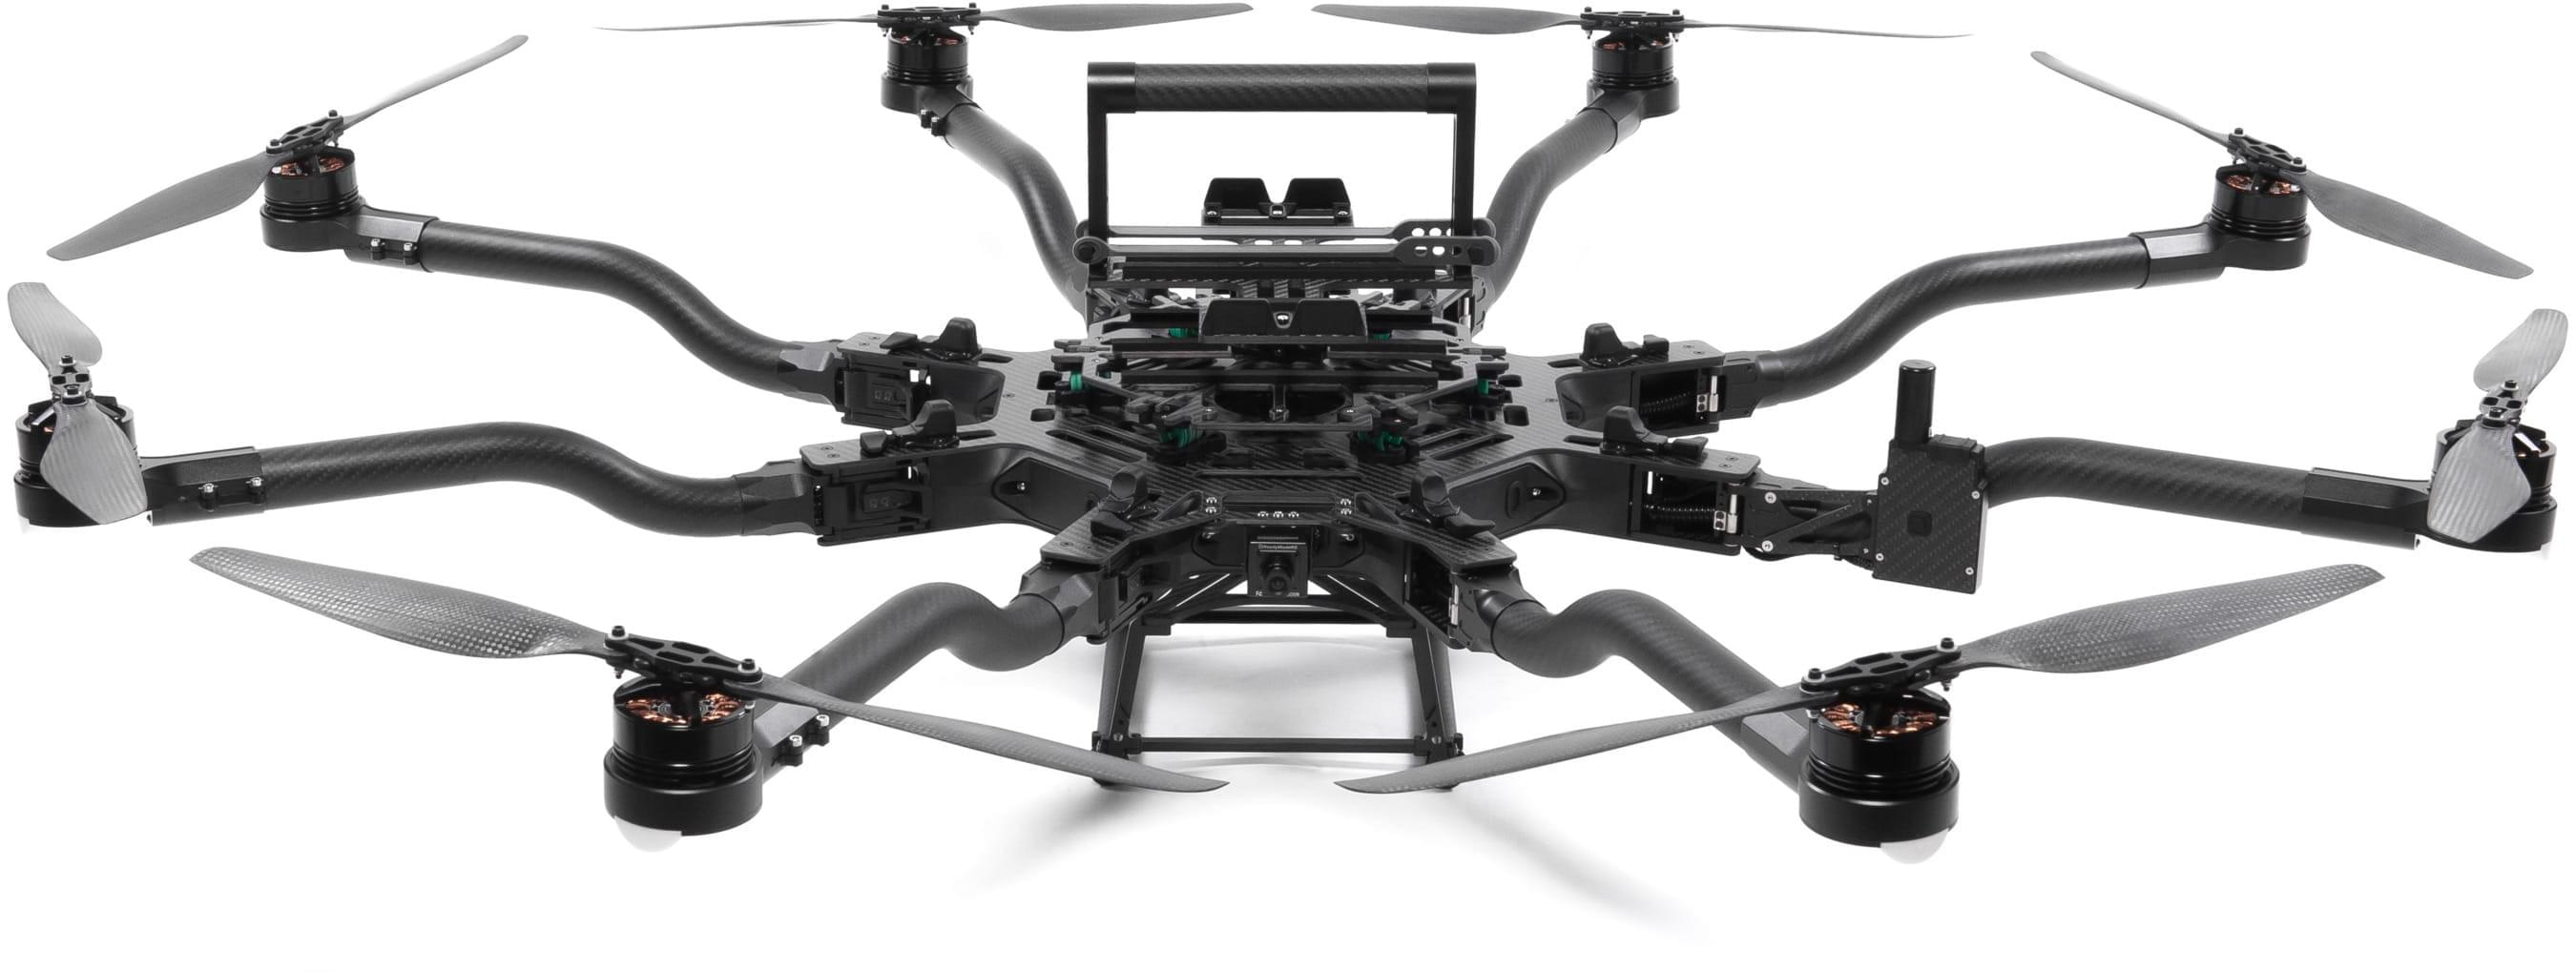 Freefly Alta 8 Specifications